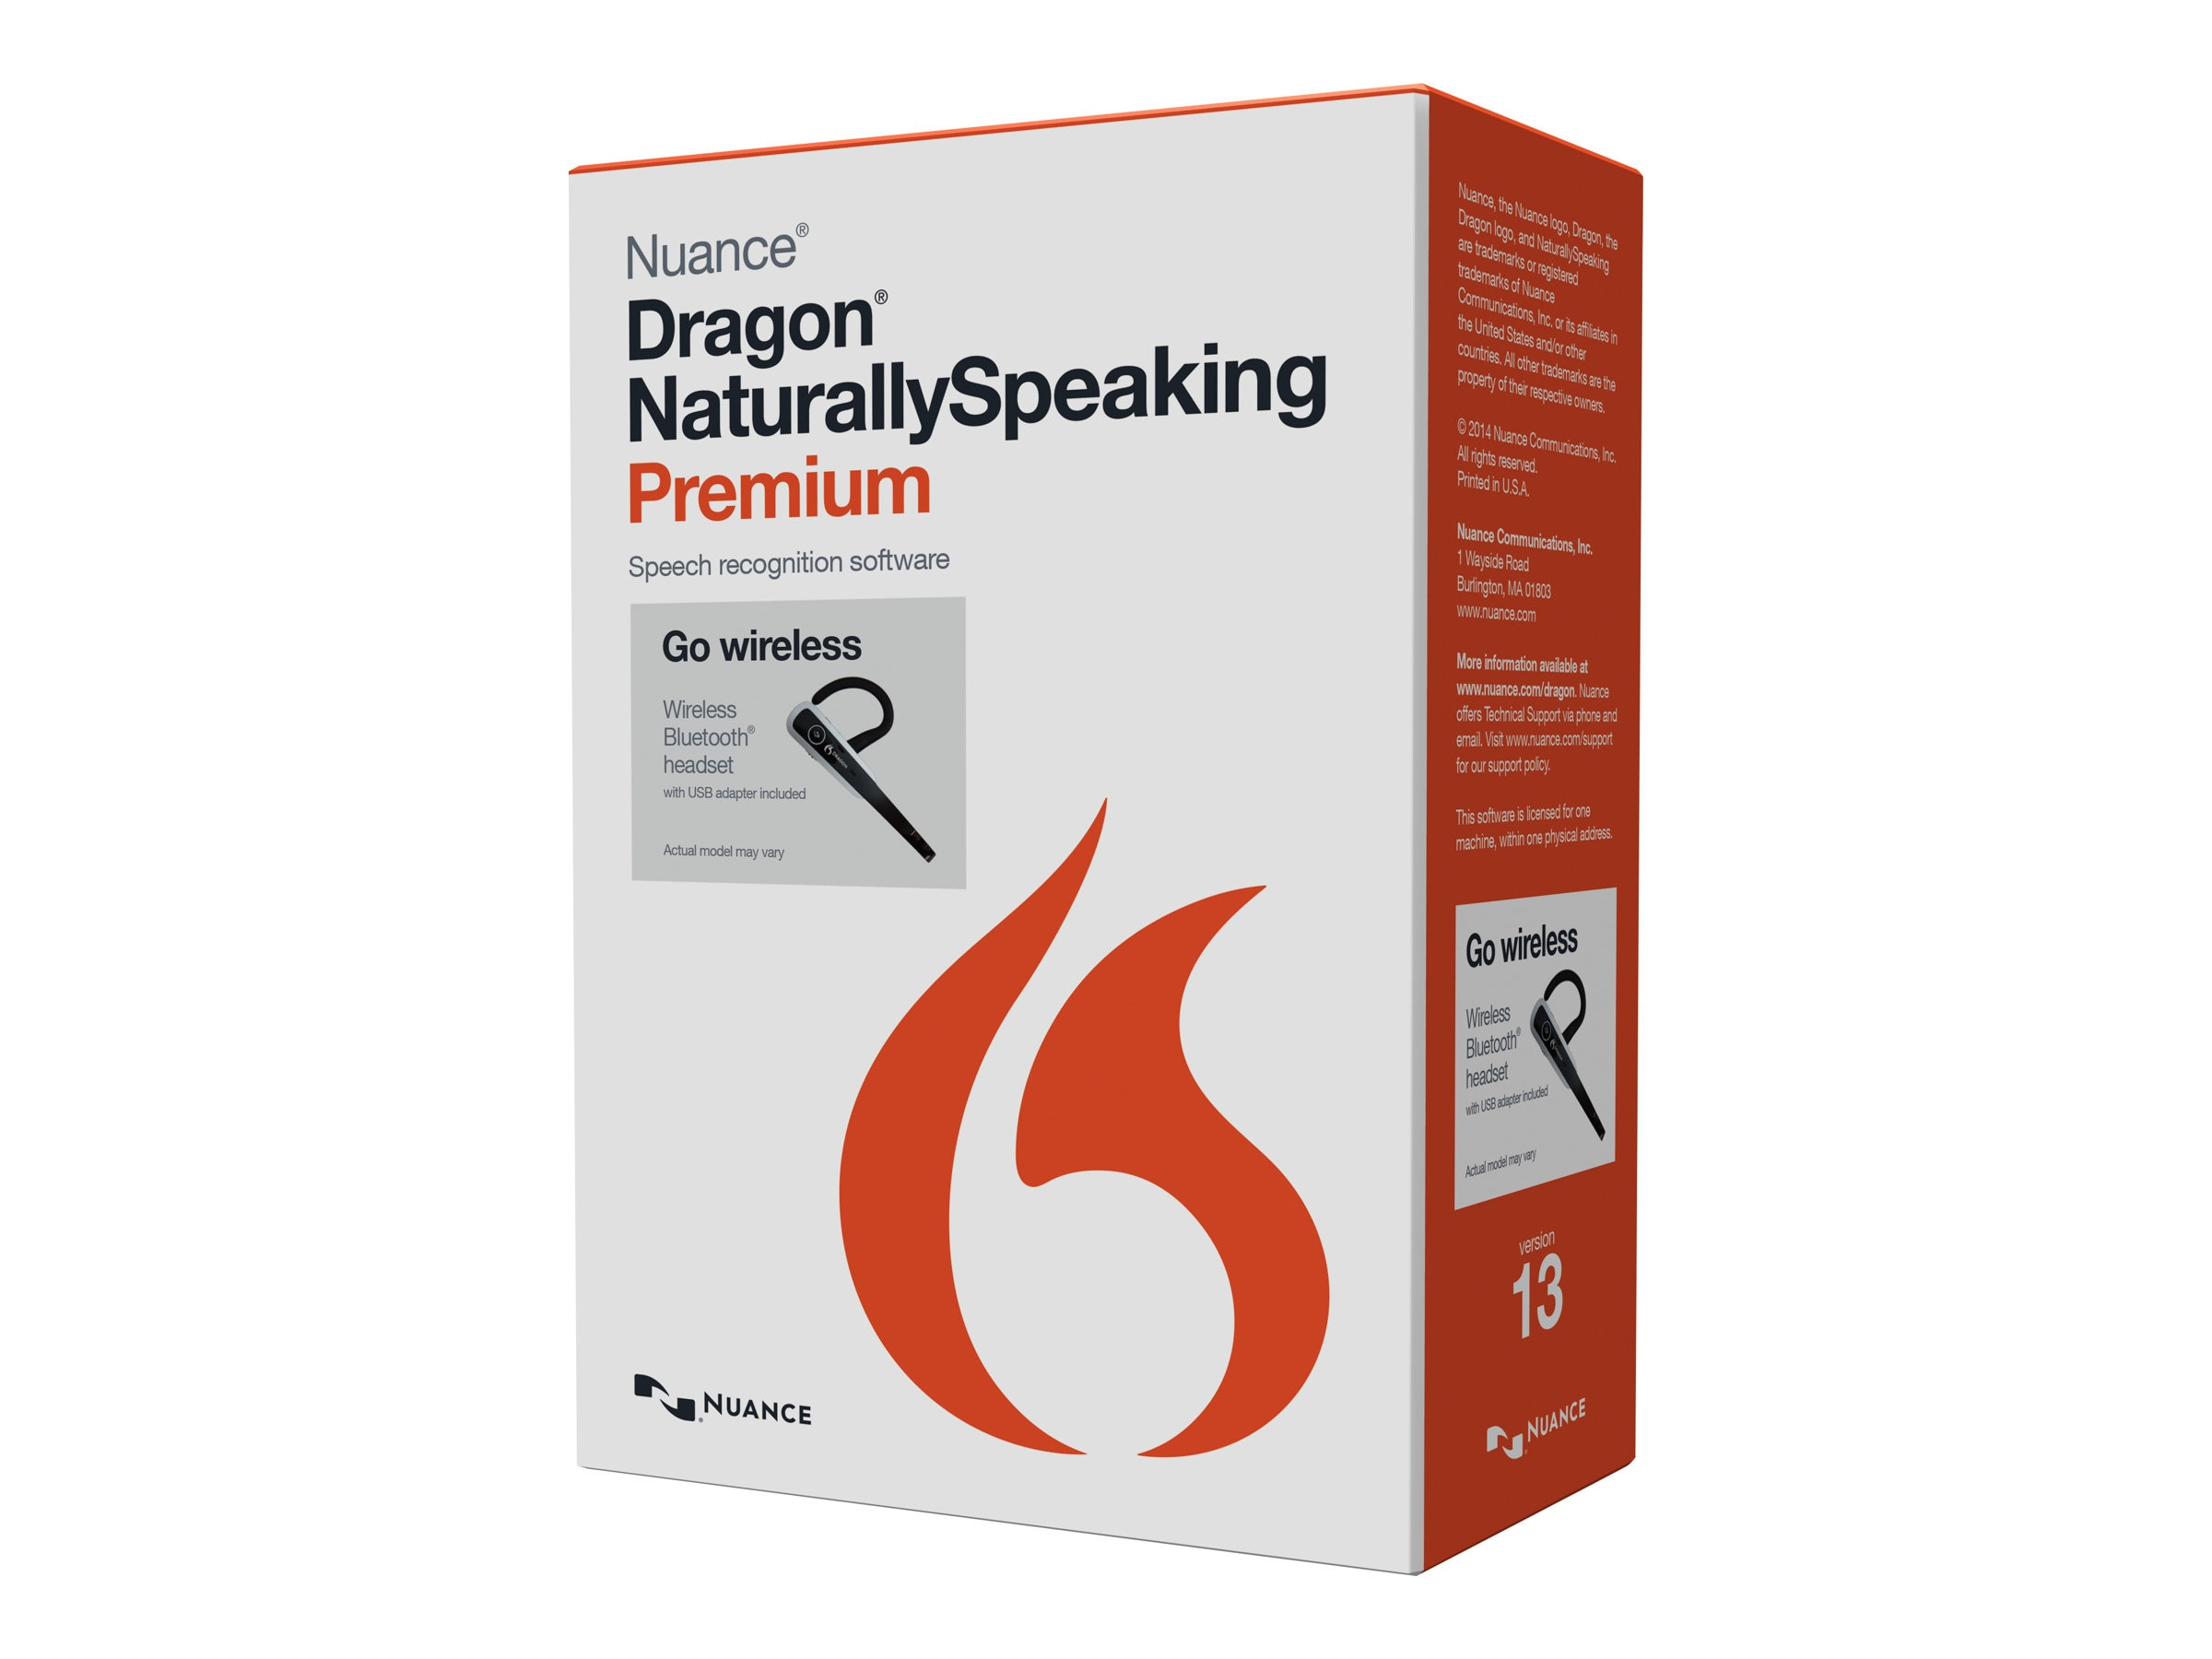 Nuance Dragon NaturallySpeaking 13.0 Premium w Bluetooth Headset